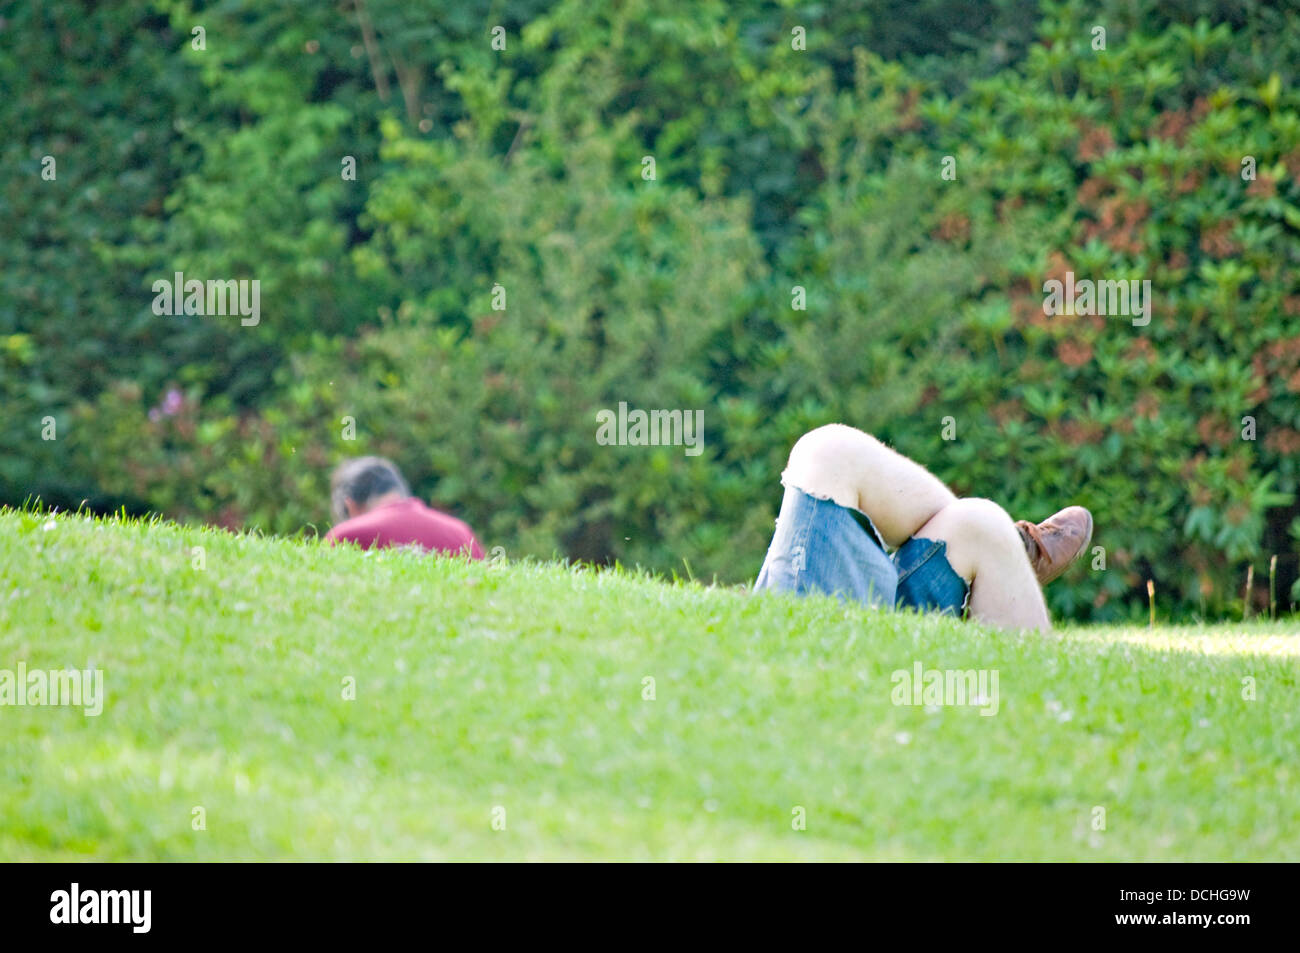 UK park scene, with someone's back, and a pair of crossed legs appearing from behind a grass slope. - Stock Image